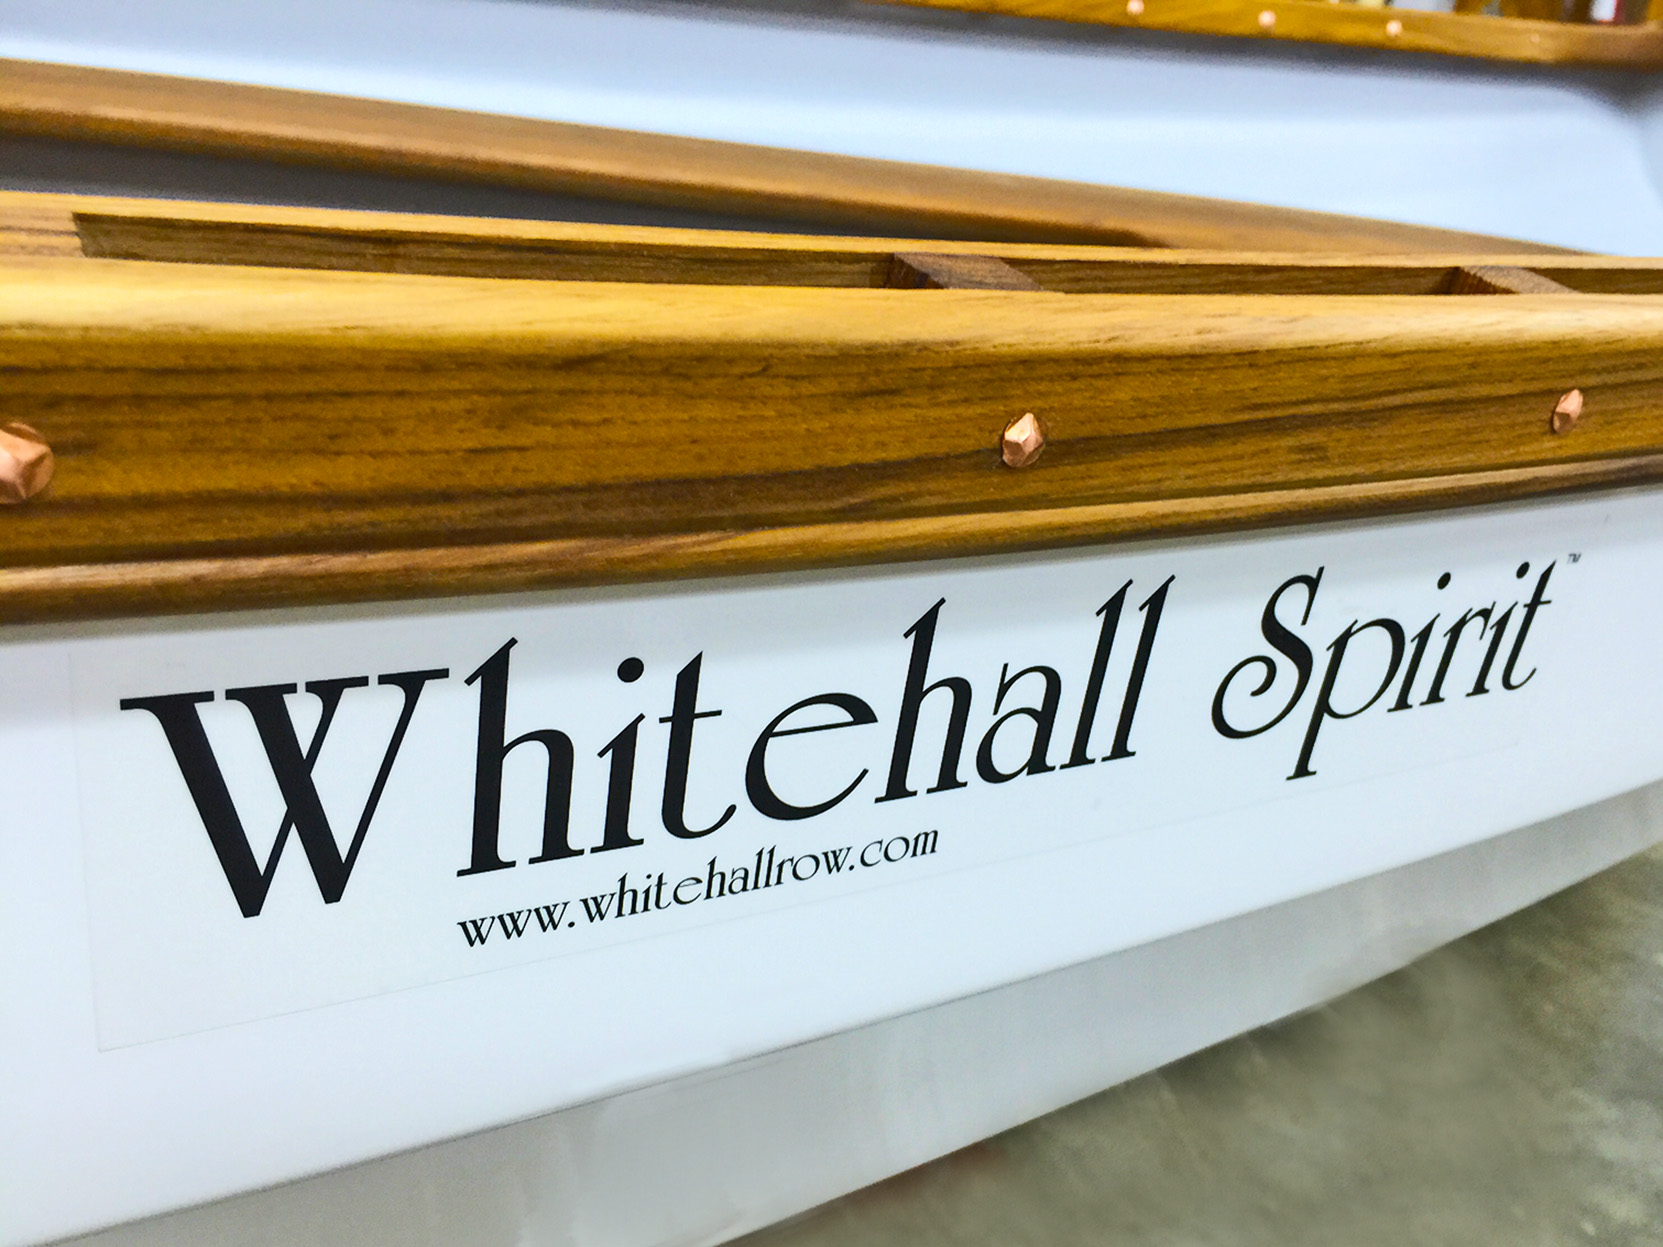 Whitehall-Spirit-logo-History-of-the-Whitehall-row-boat-Whitehall-Rowing-and-Sail